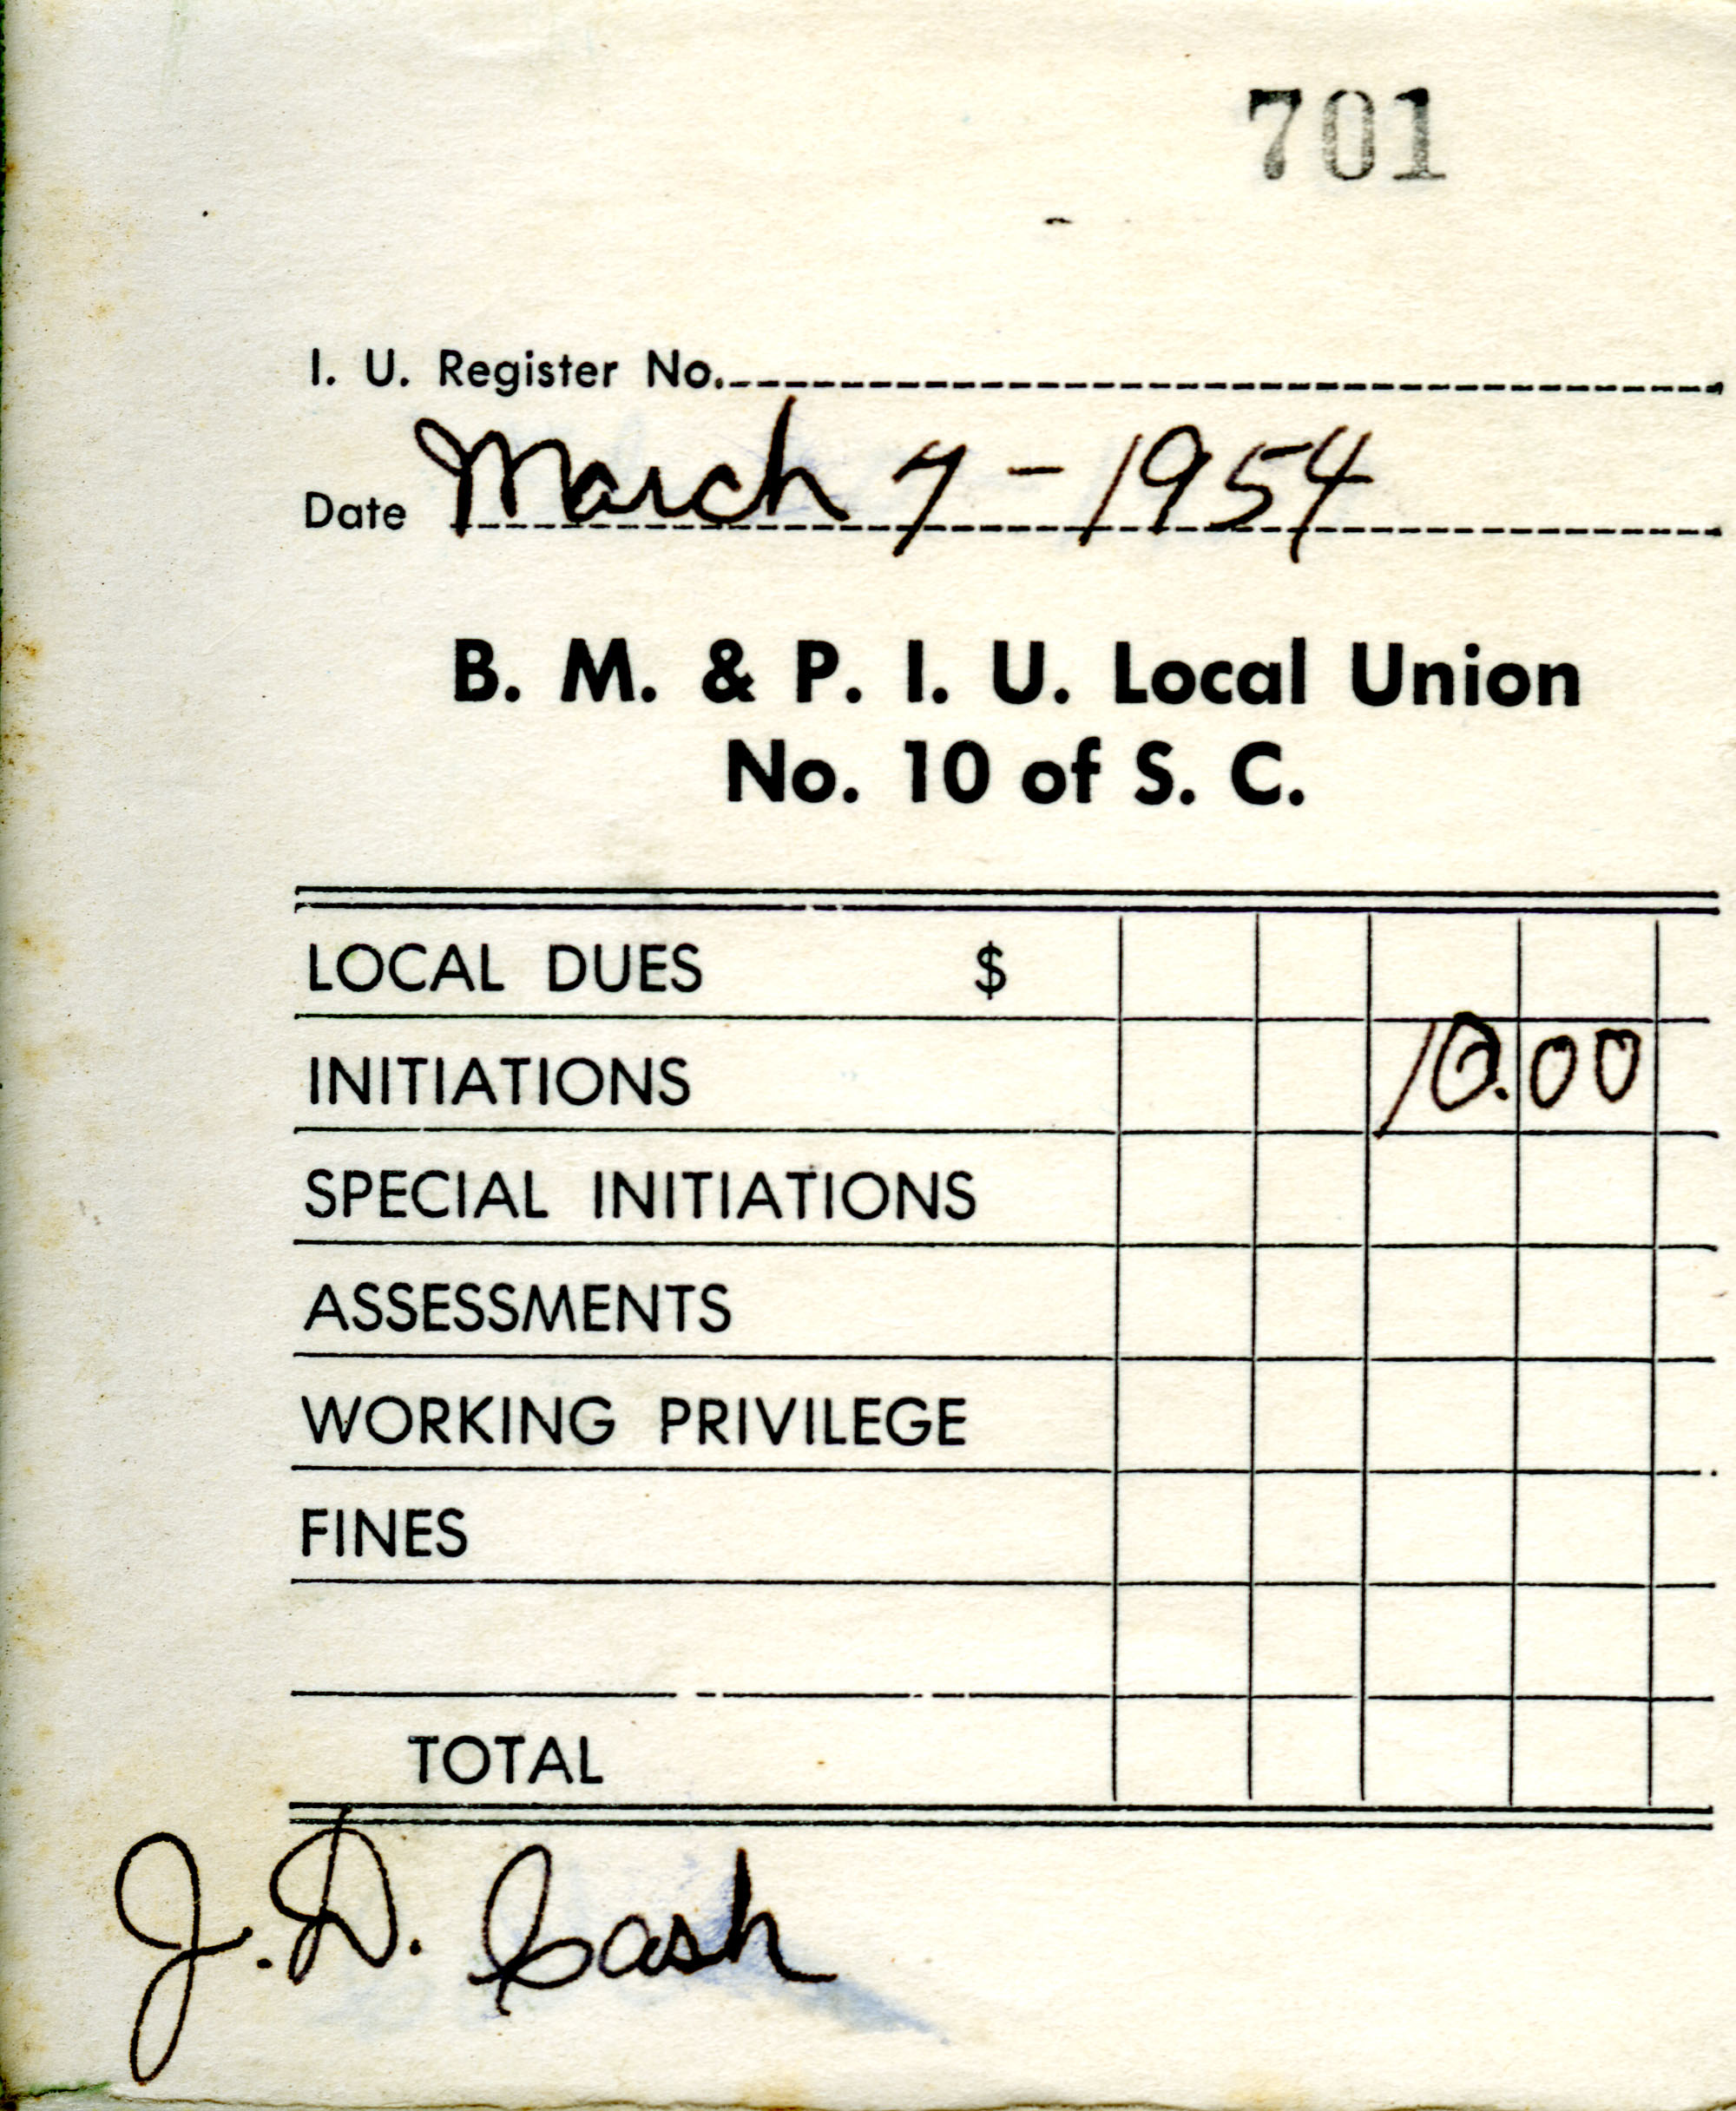 Receipt Book 5, Page 1